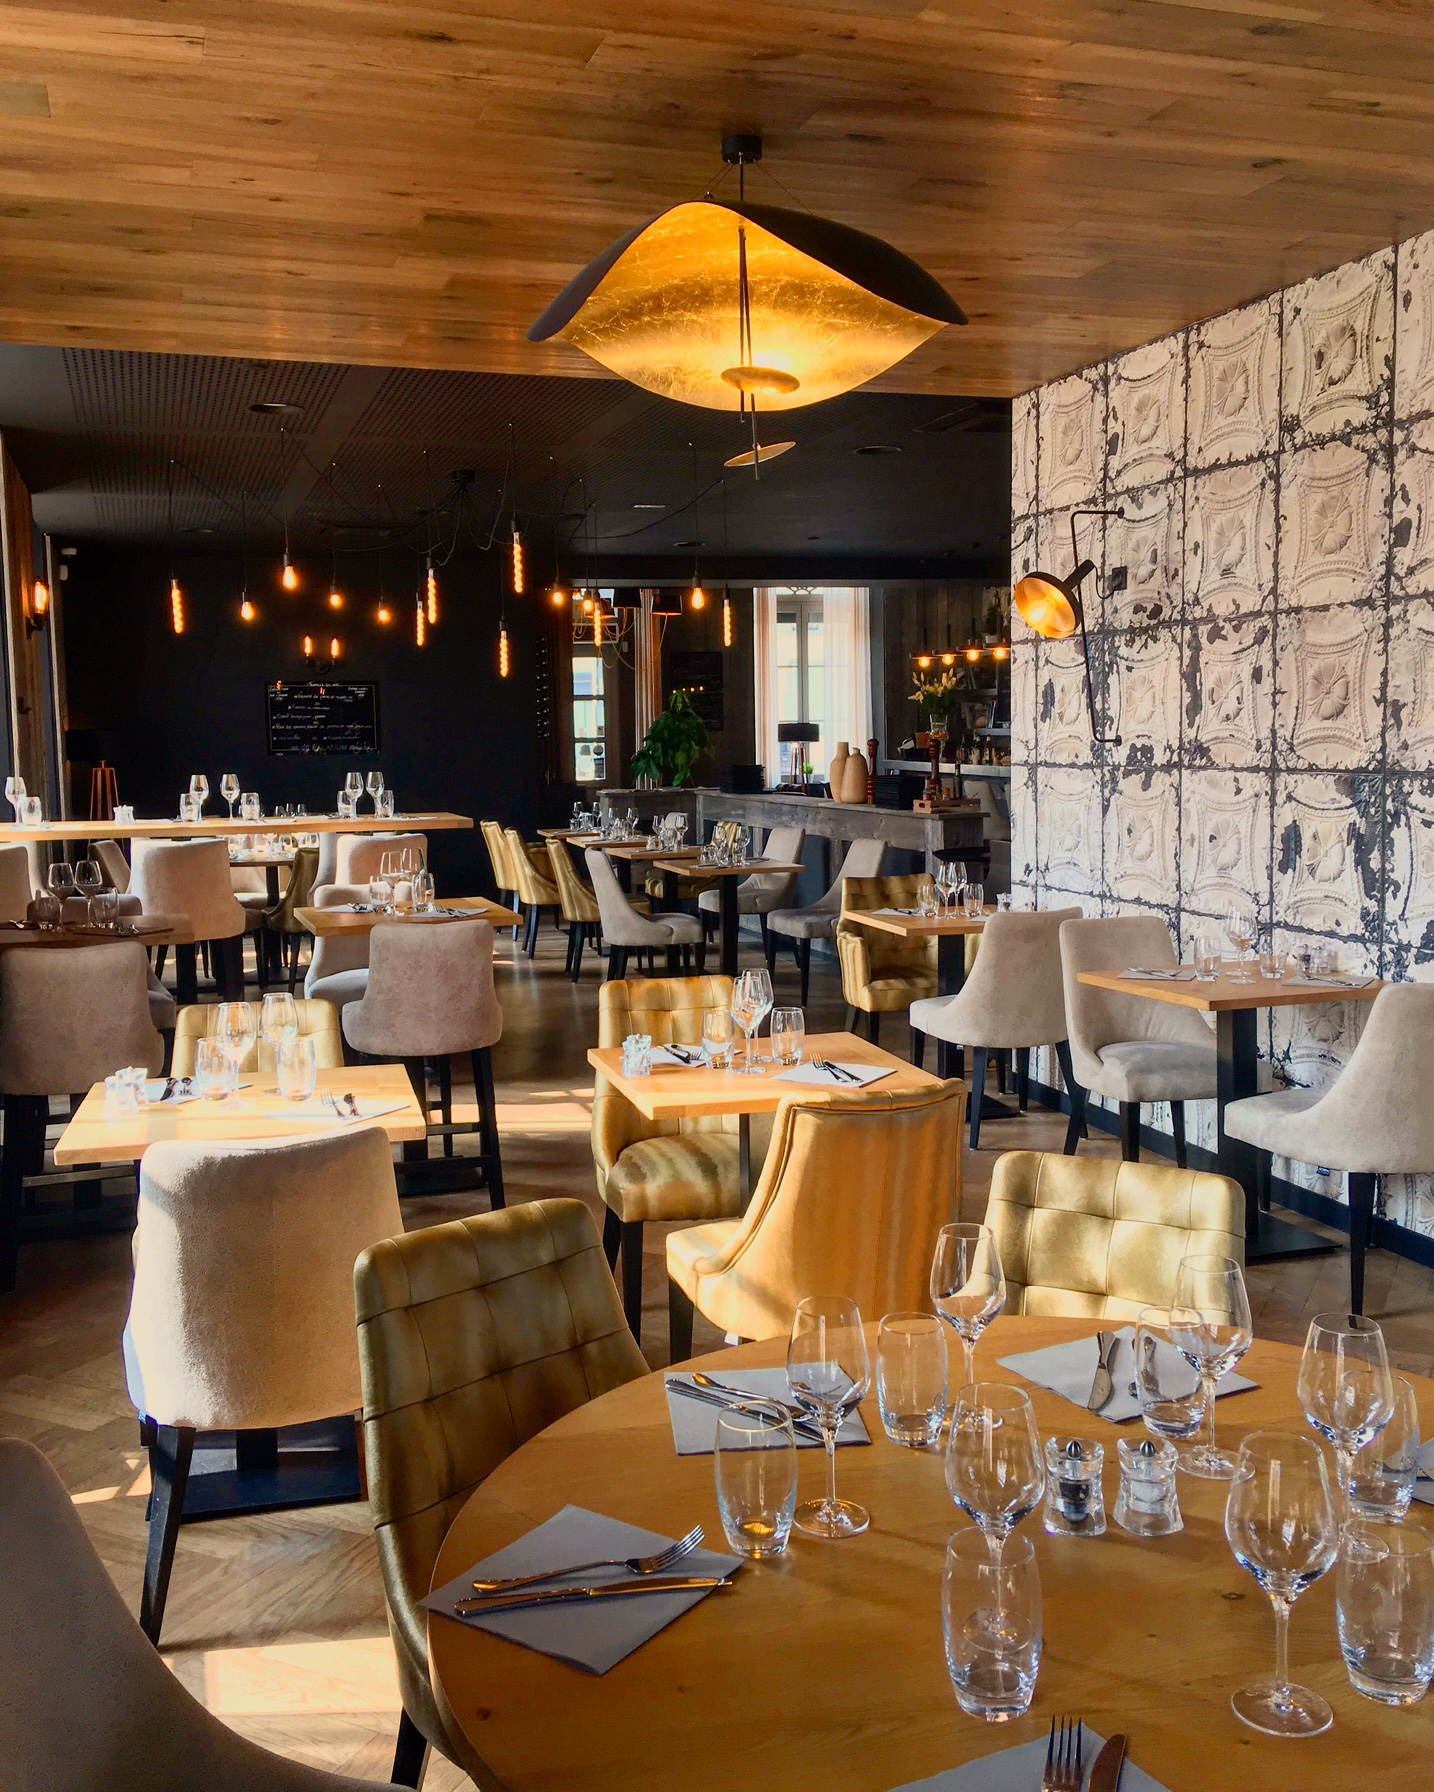 BRASSERIES IN THE MOOD FOR LUXE